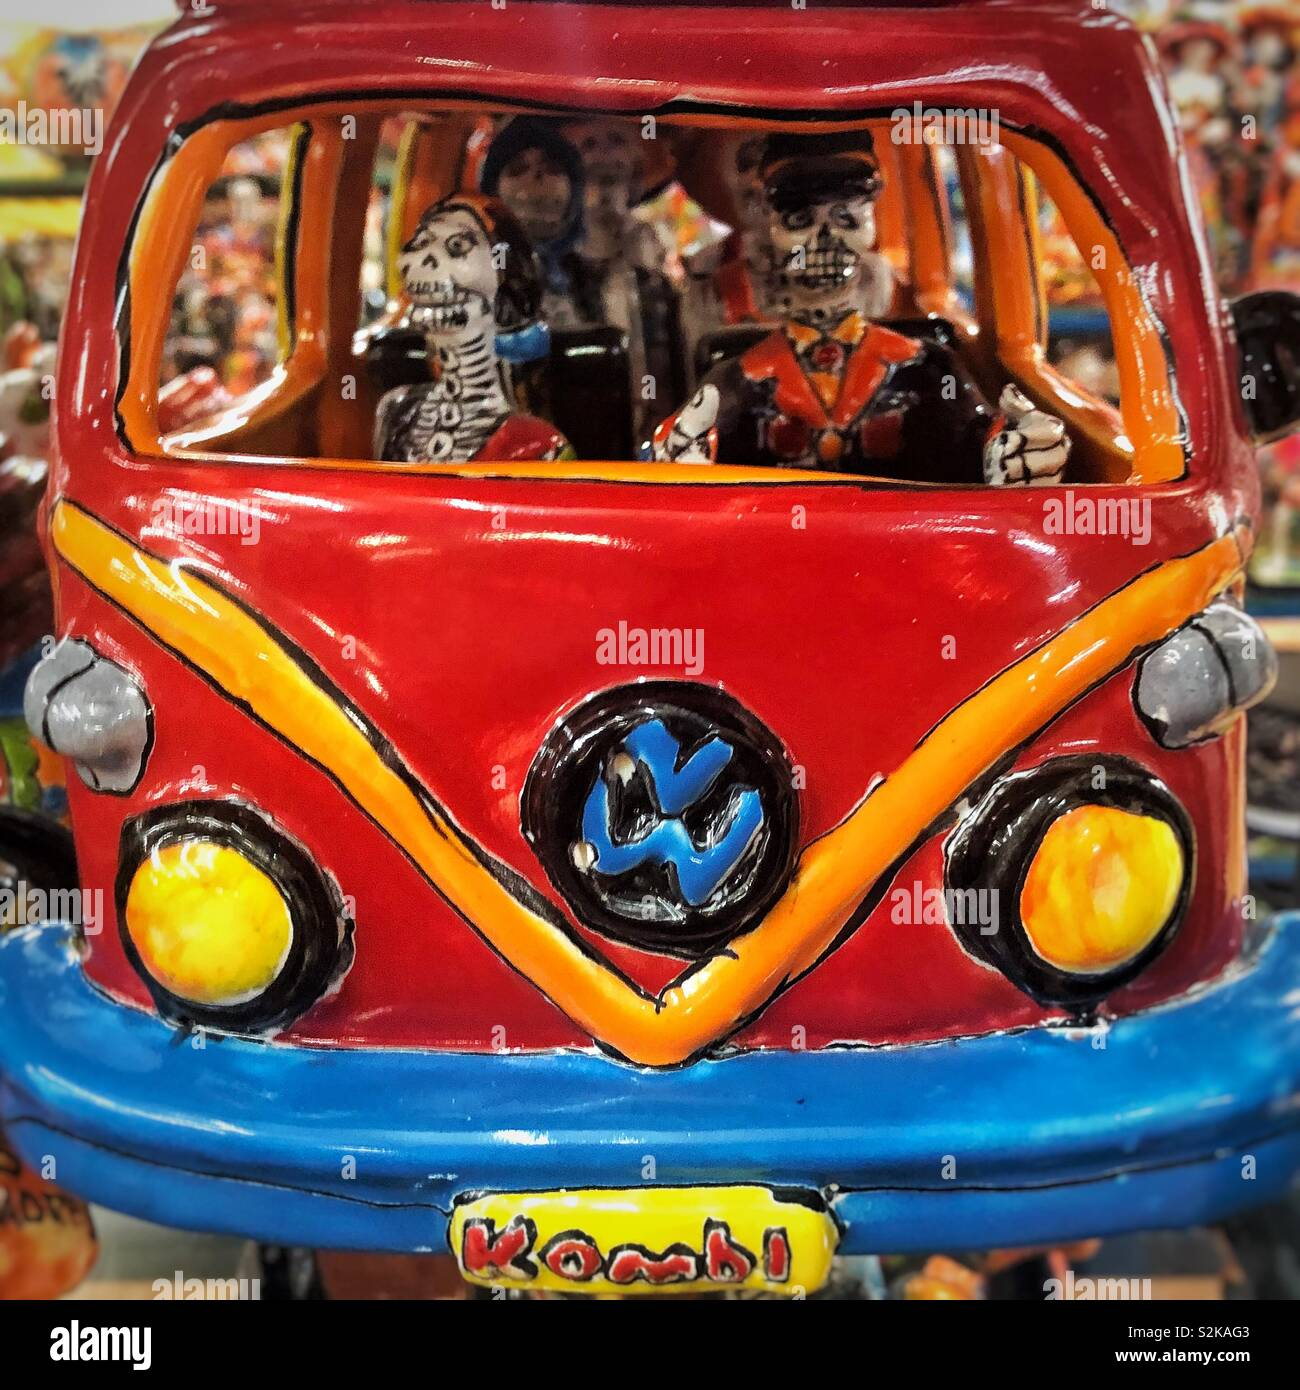 Fun ceramic VW bus with Skeletons as passengers in gift shop in Mexico - Stock Image